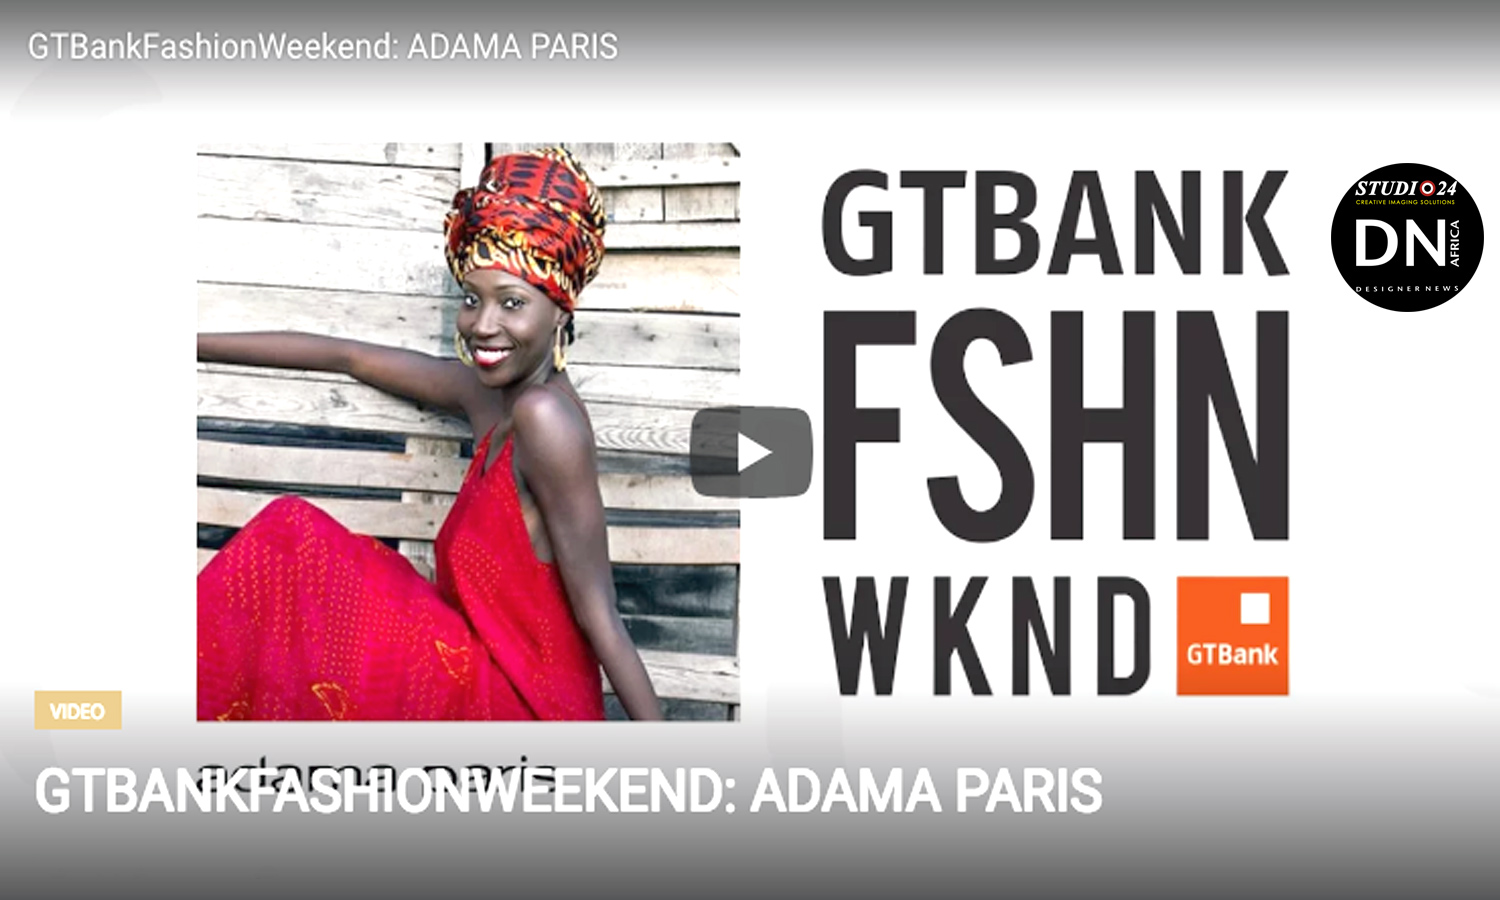 AFRICAN FASHION STYLE MAGAZINE - Adama-Paris-Collection-on-the-Runway-at-the-GTBank-Fashion-Weekend 2016 Video - Media Partner DN MAG, DN AFRICA -STUDIO 24 NIGERIA - STUDIO 24 INTERNATIONAL